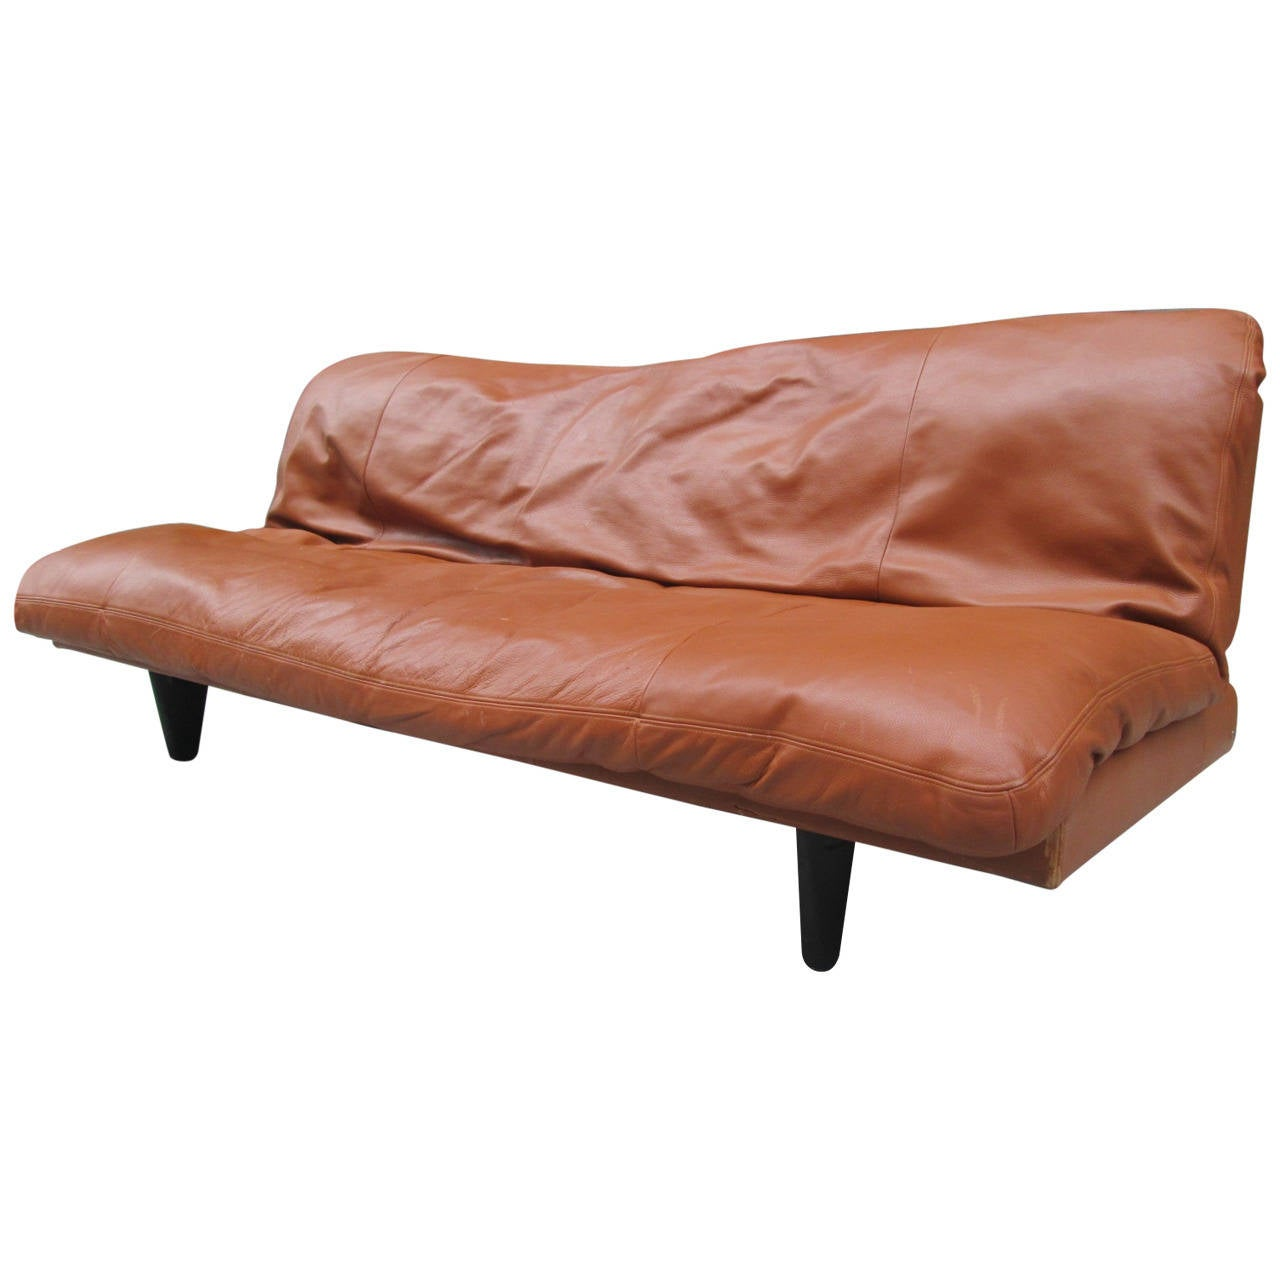 Leather Convertible Sofa By De Sede For